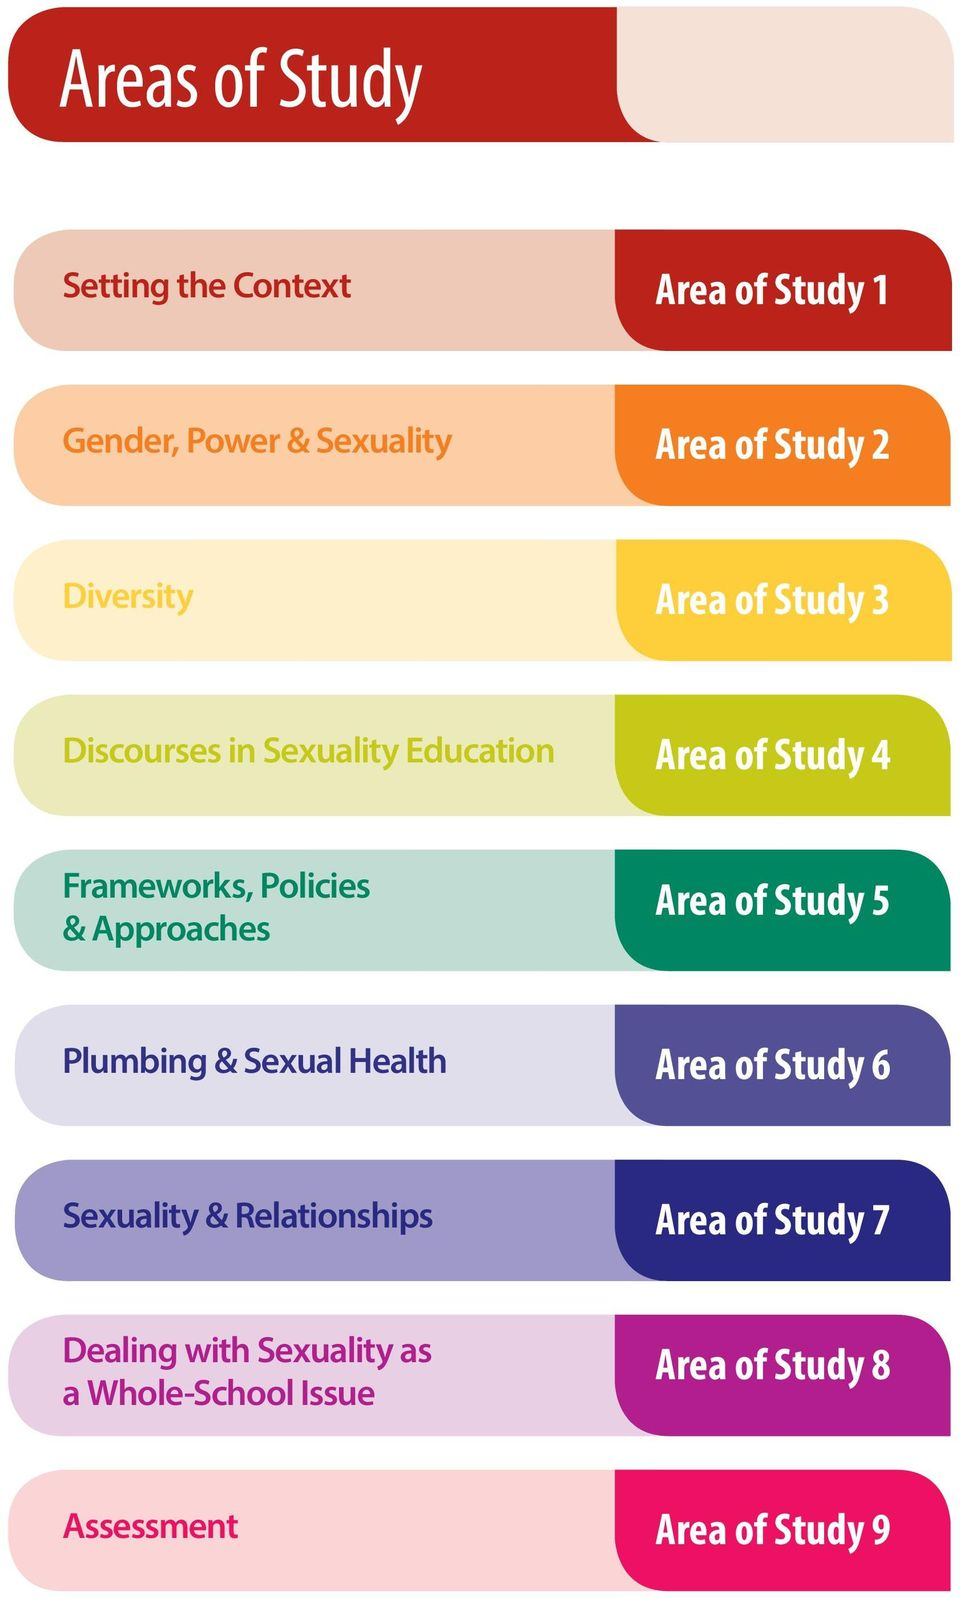 & Approaches Area of Study 5 Plumbing & Sexual Health Area of Study 6 Sexuality & Relationships